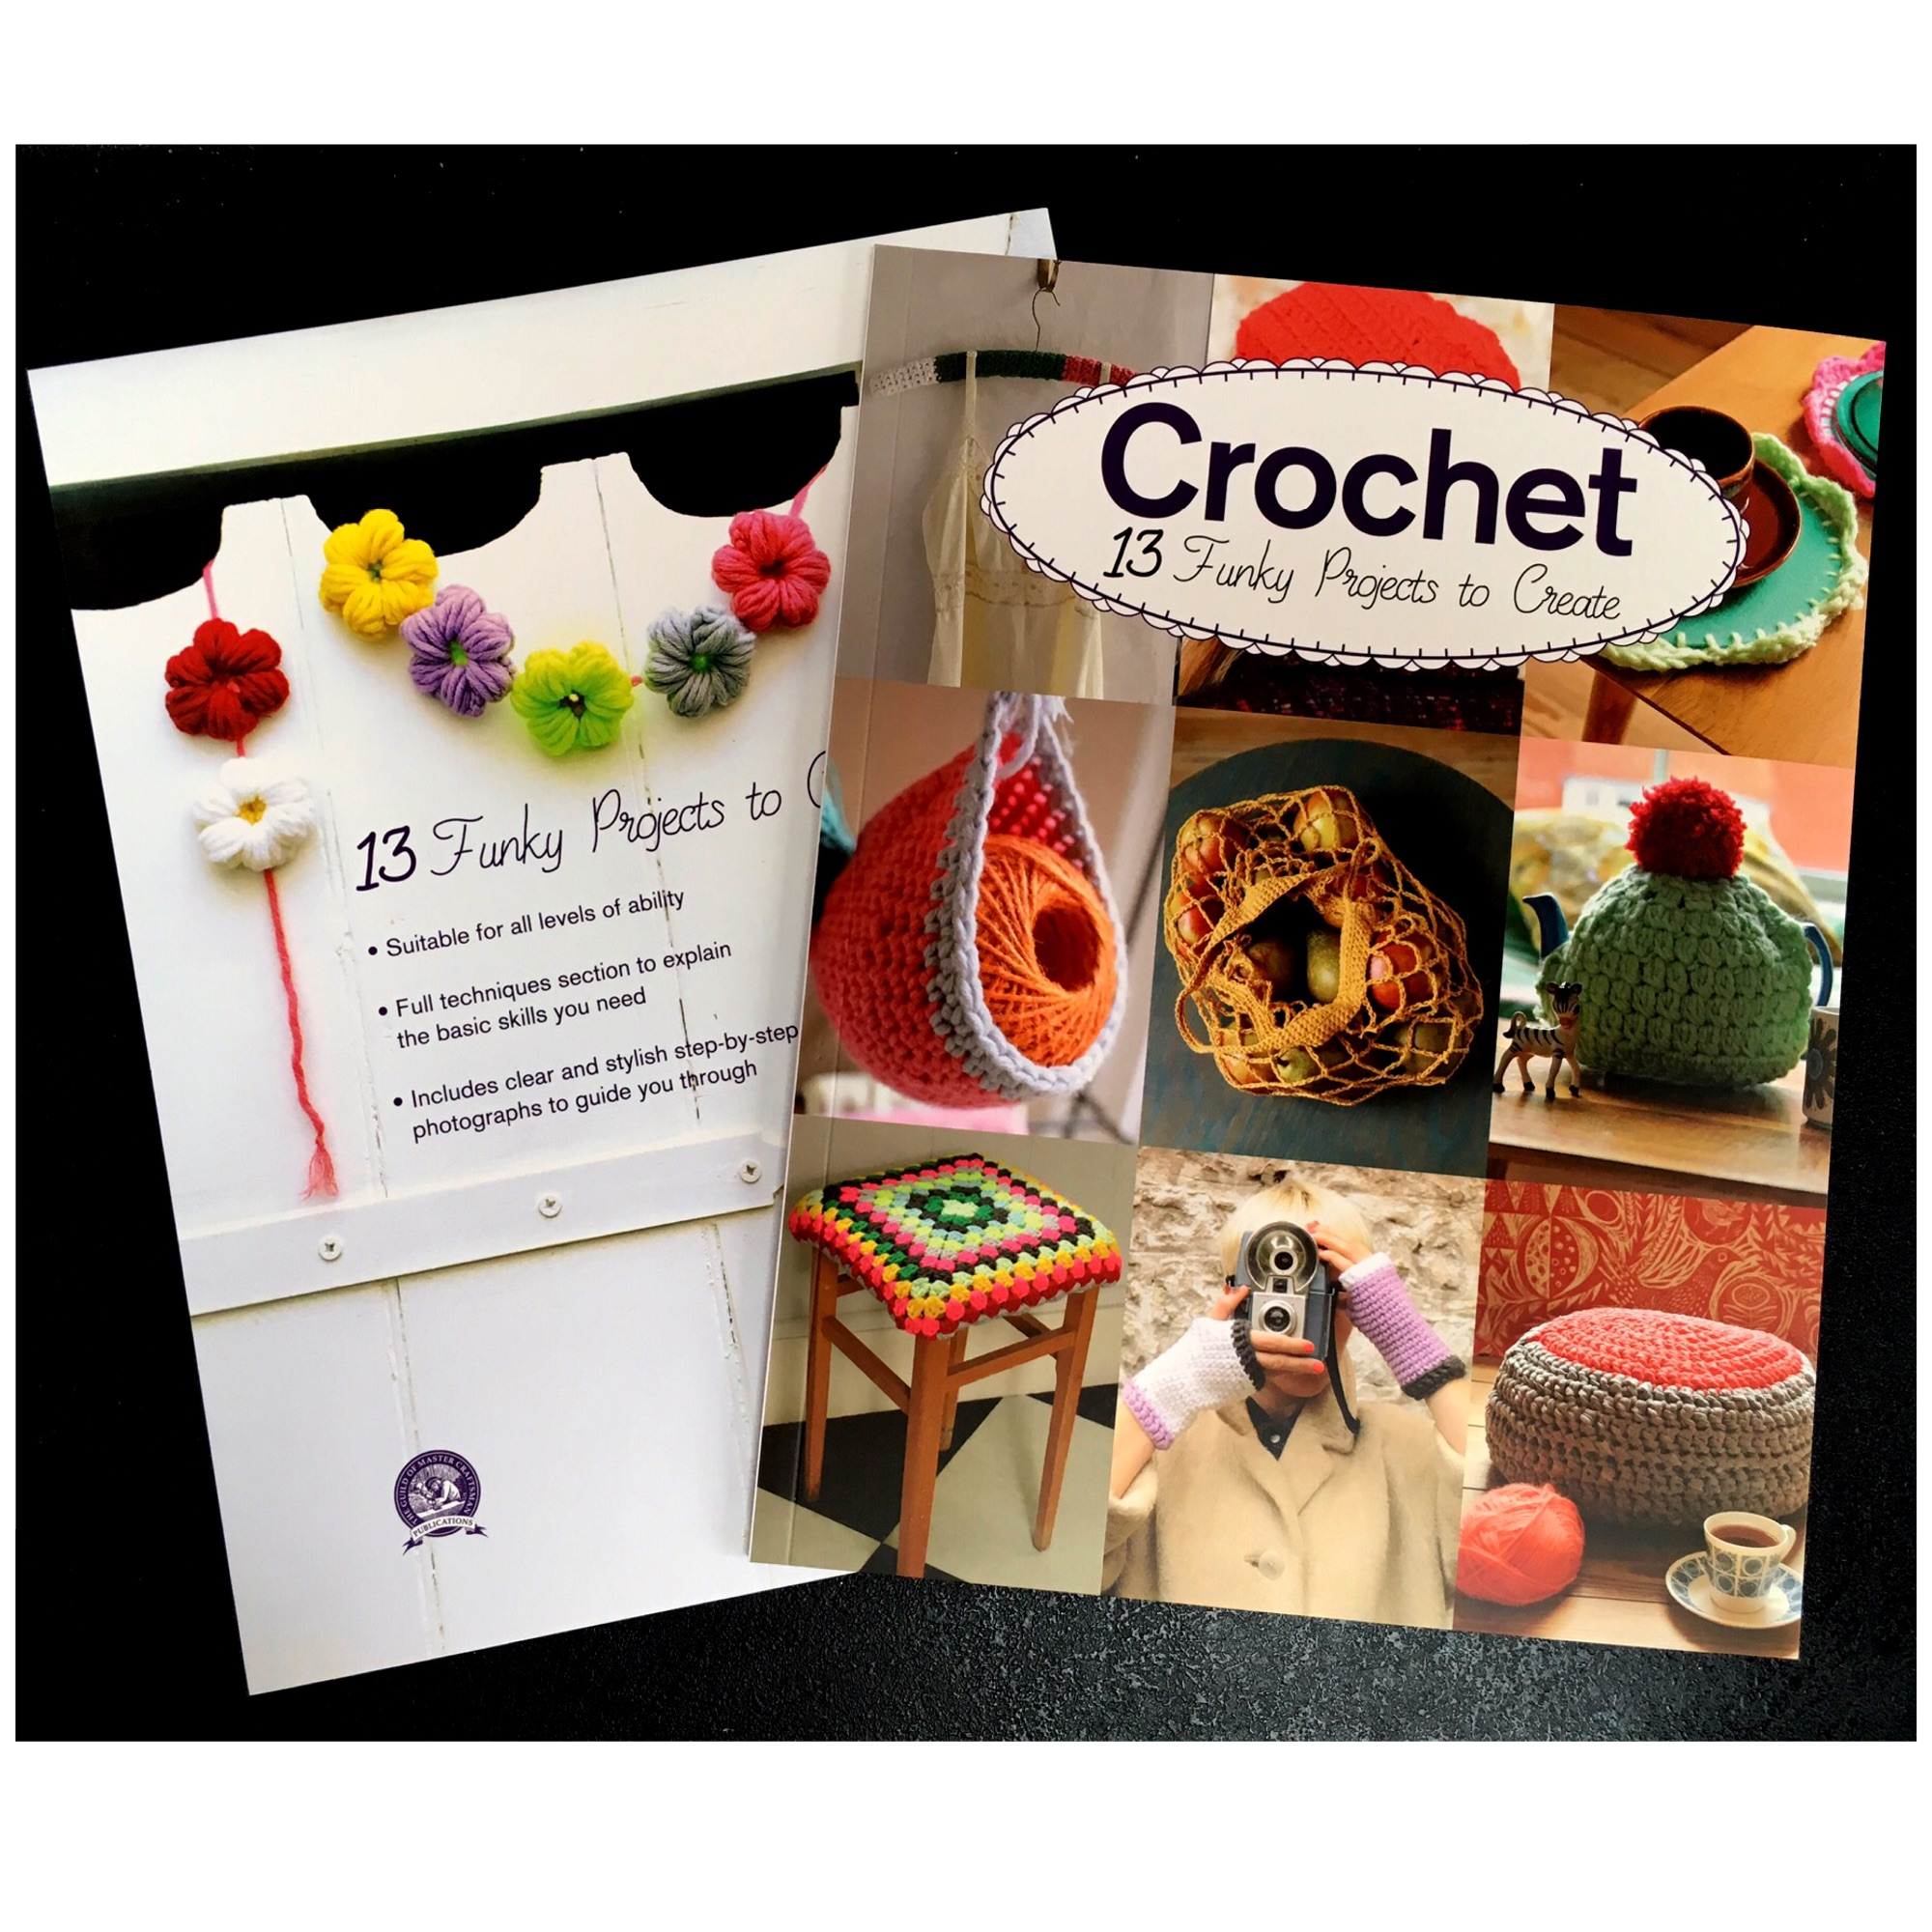 Gmc Crochet 13 funky projects to create Claire Culley Amy Phipps boklet